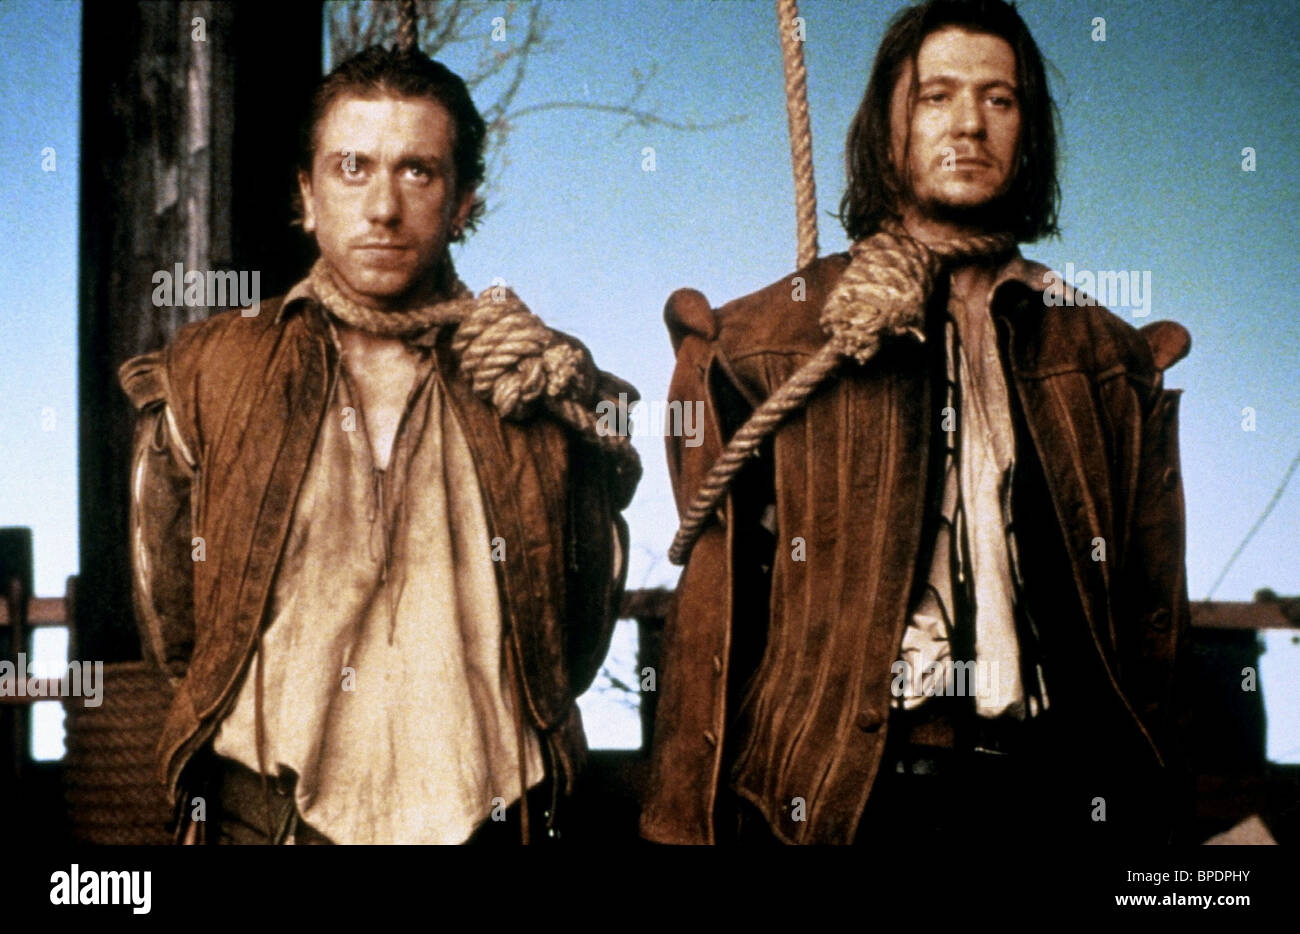 rosencrantz and guildenstern are dead identity essay 2018-5-29  rosencrantz and guildenstern are dead rosencrantz and guildenstern are dead is a play that deals with the theater of the absurd.